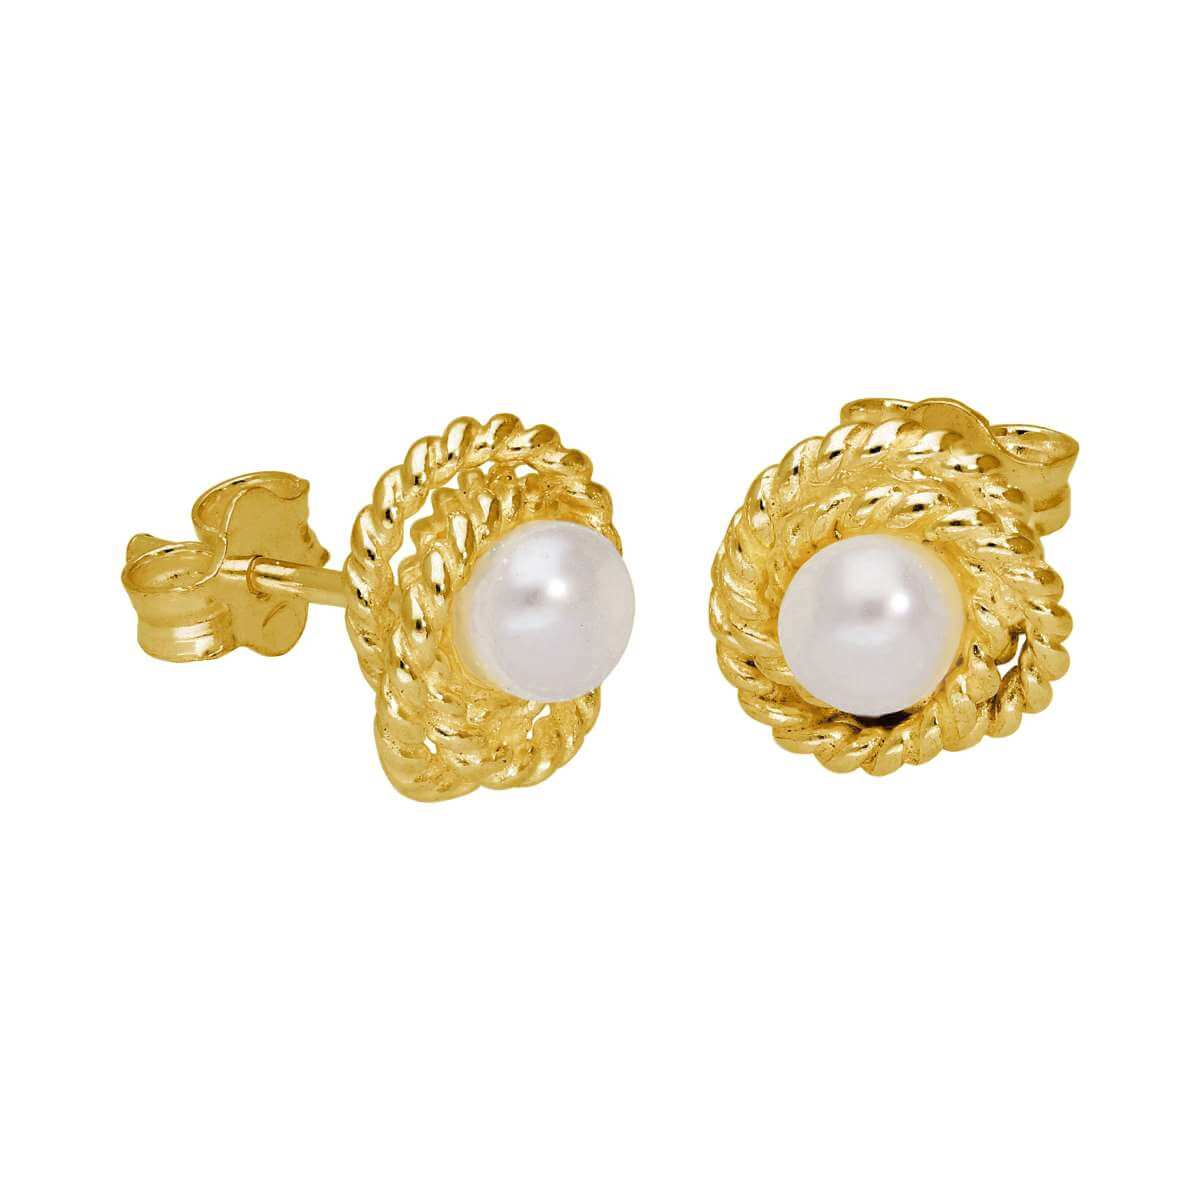 Gold Plated Sterling Silver Beaded Knot Pearl Stud Earrings